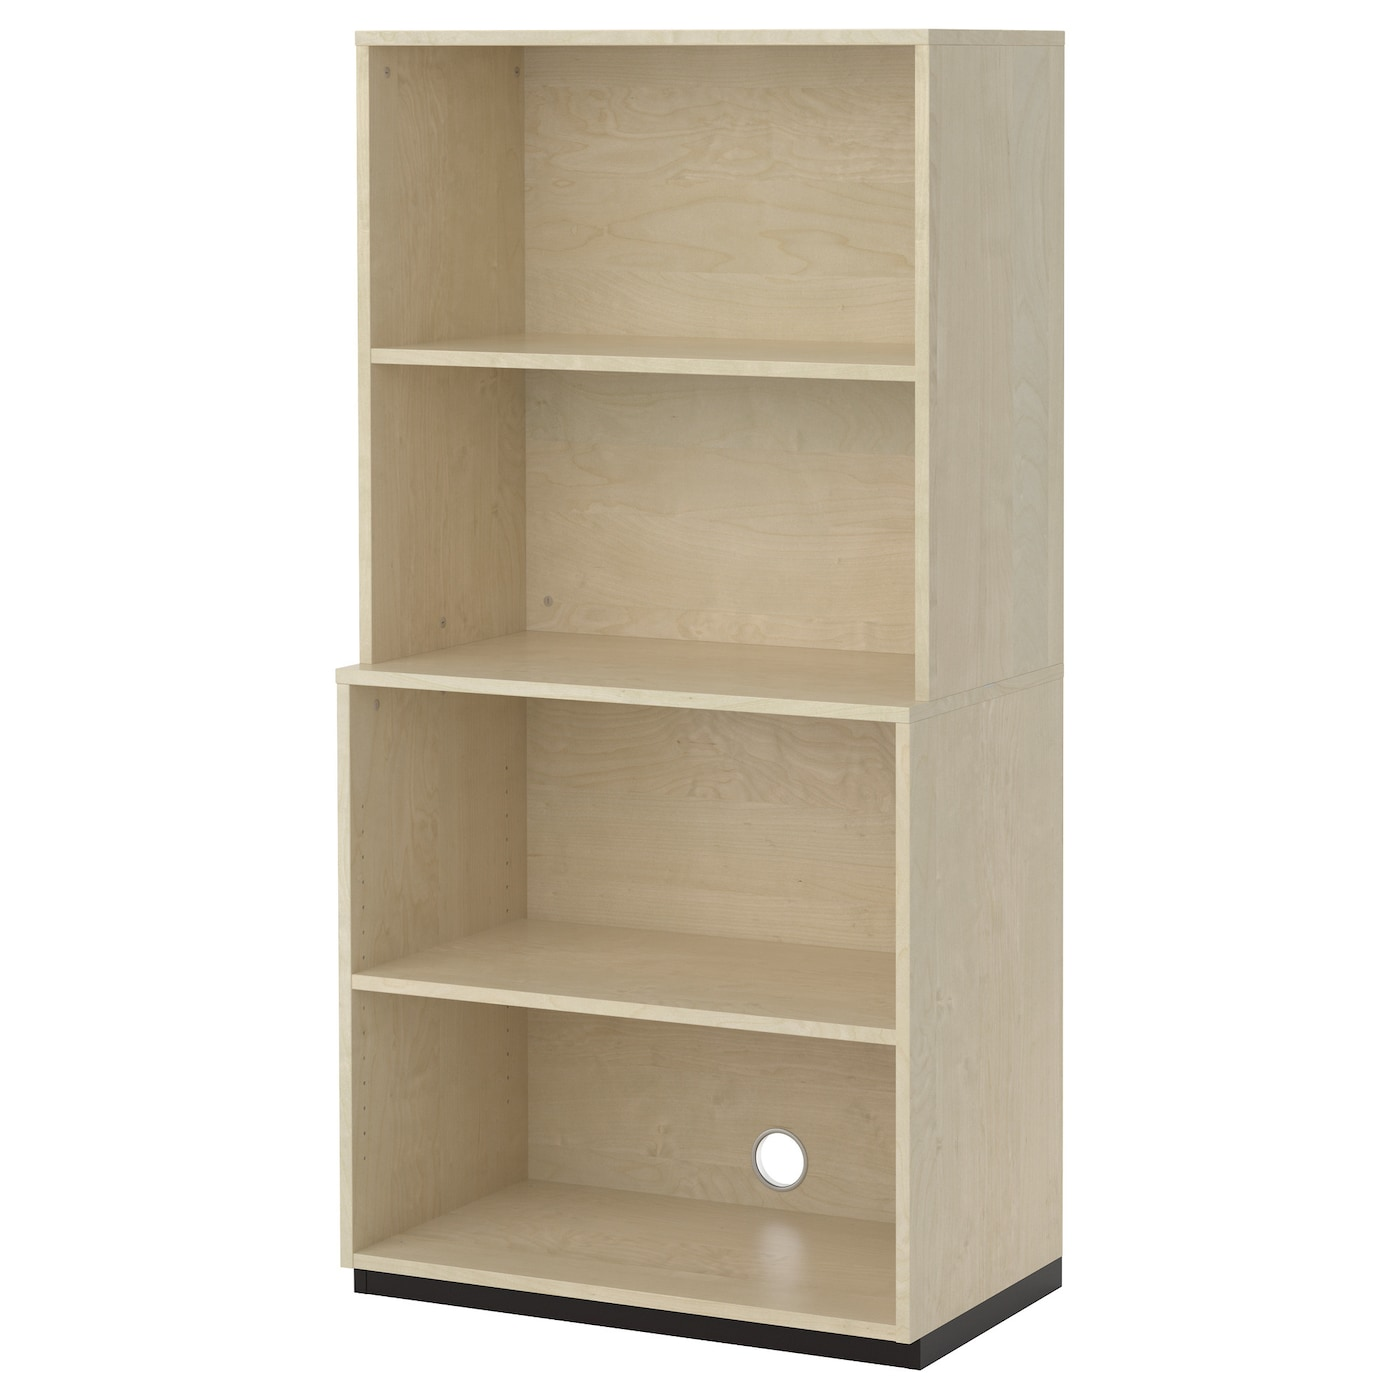 Galant Open Storage Combination Birch Veneer 80x160 Cm Ikea